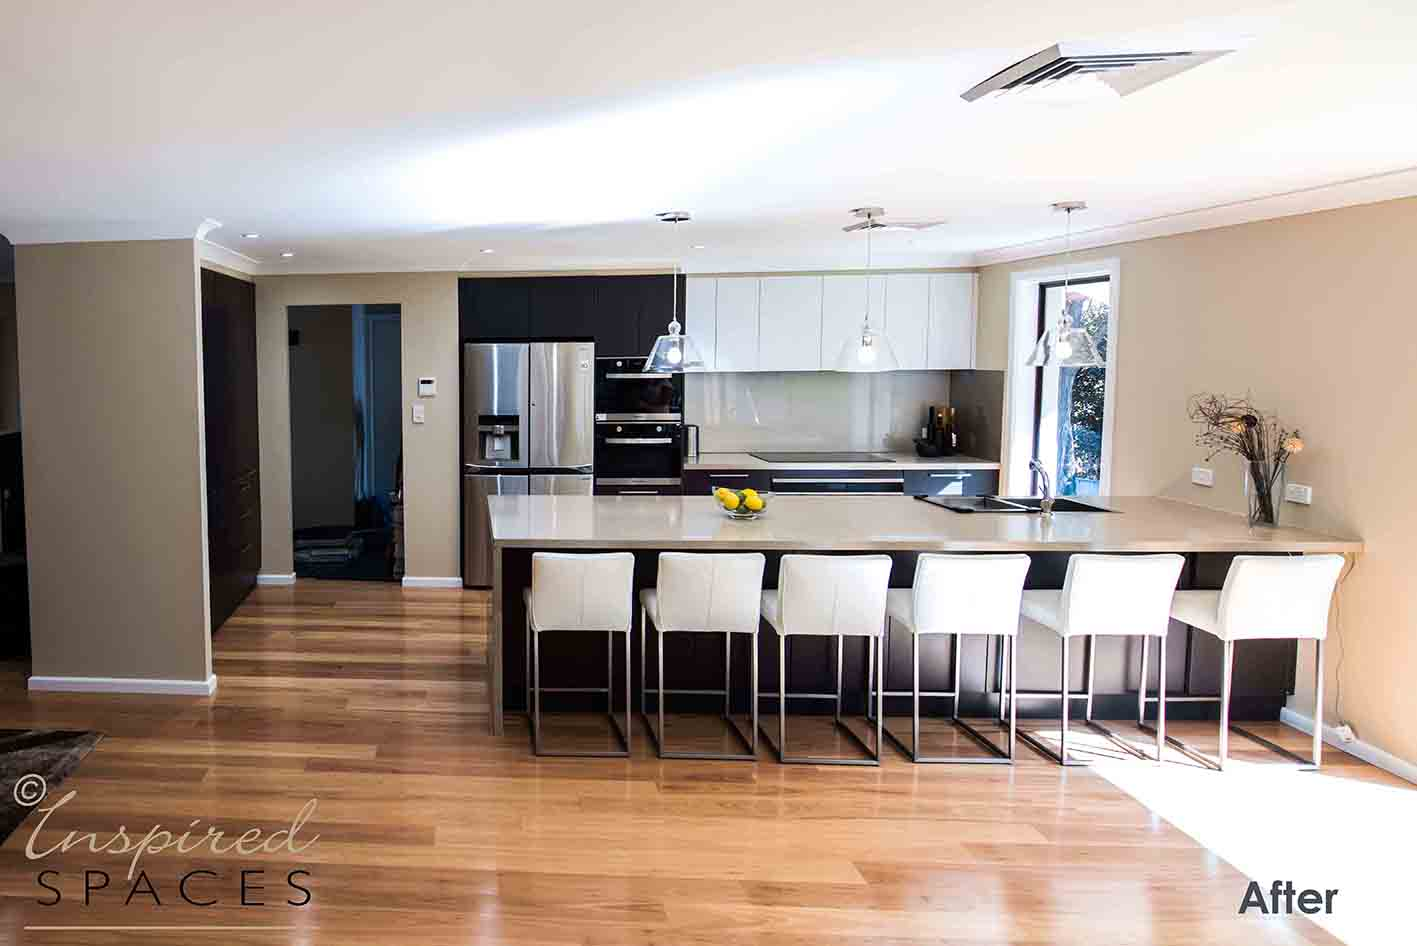 New kitchen with island bench, breakfast bar and pendant lights